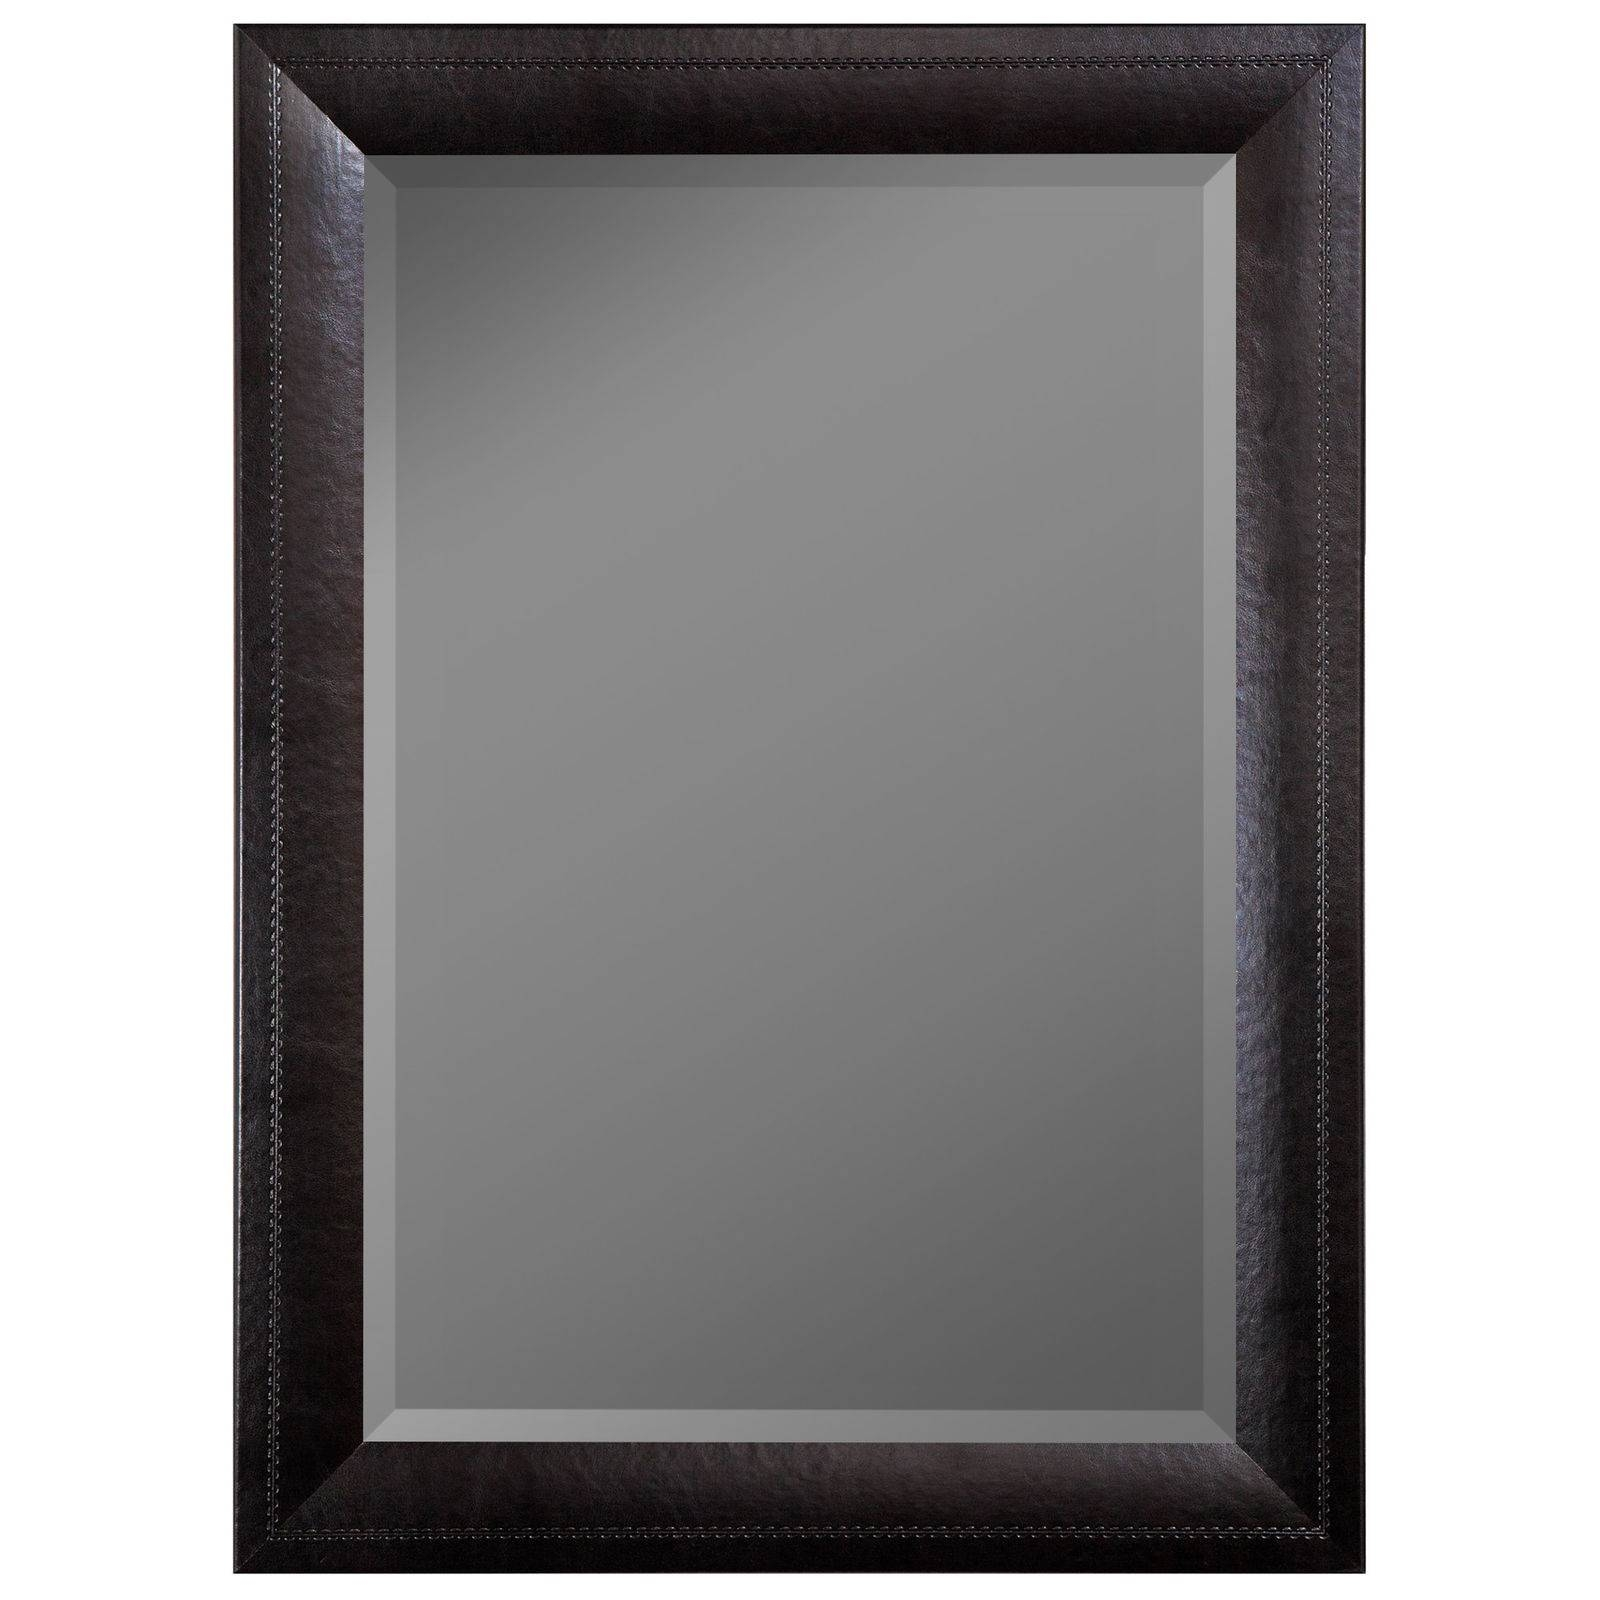 Hitchcock Butterfield Black Saddle-Stitched Leather-Framed Mirror in Black Leather Framed Mirrors (Image 2 of 15)